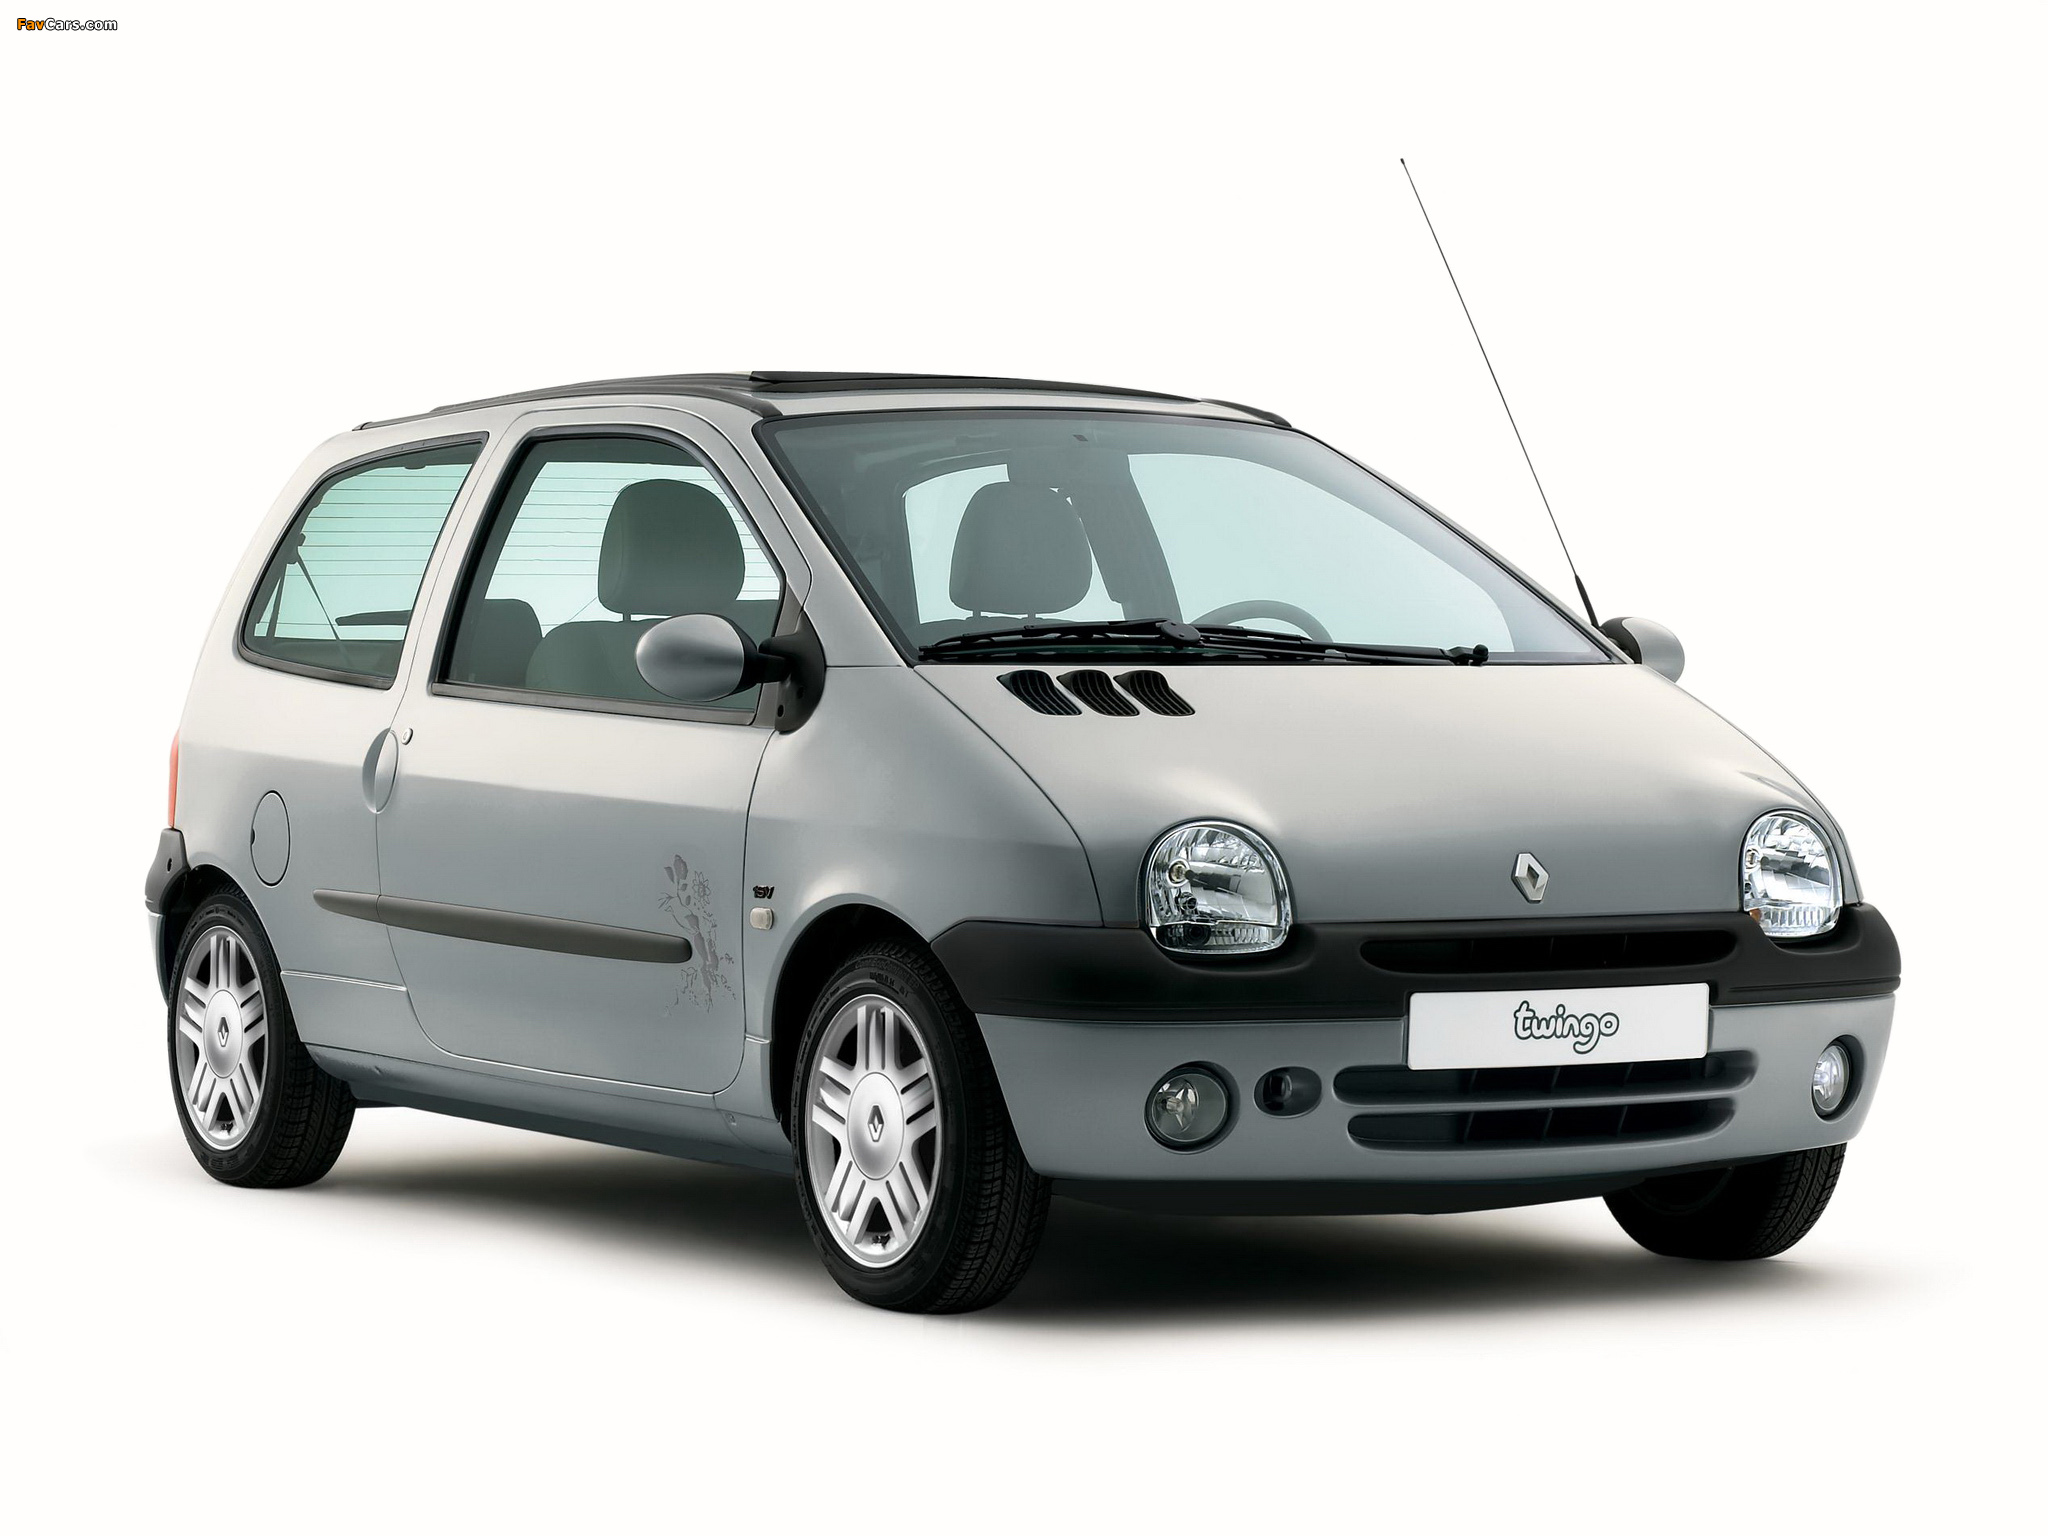 2006 renault twingo partsopen. Black Bedroom Furniture Sets. Home Design Ideas